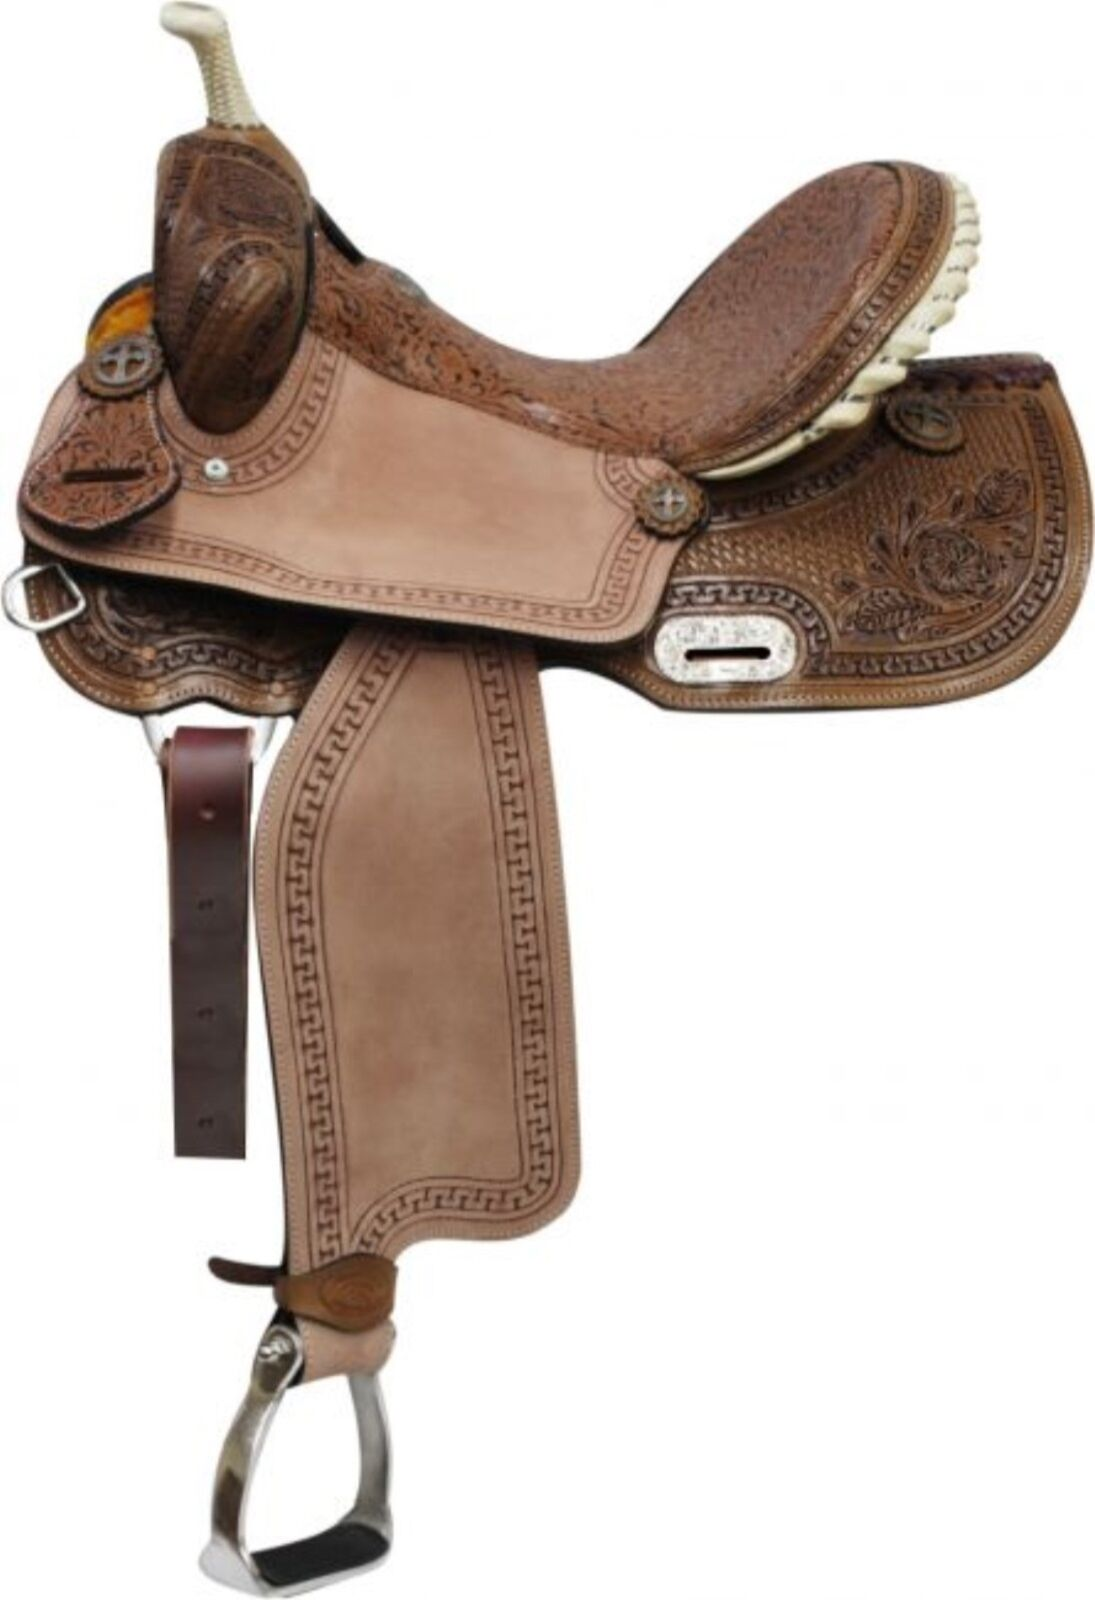 15  Double T BARREL Style Saddle With Brown Filigree Seat & Floral Tooling